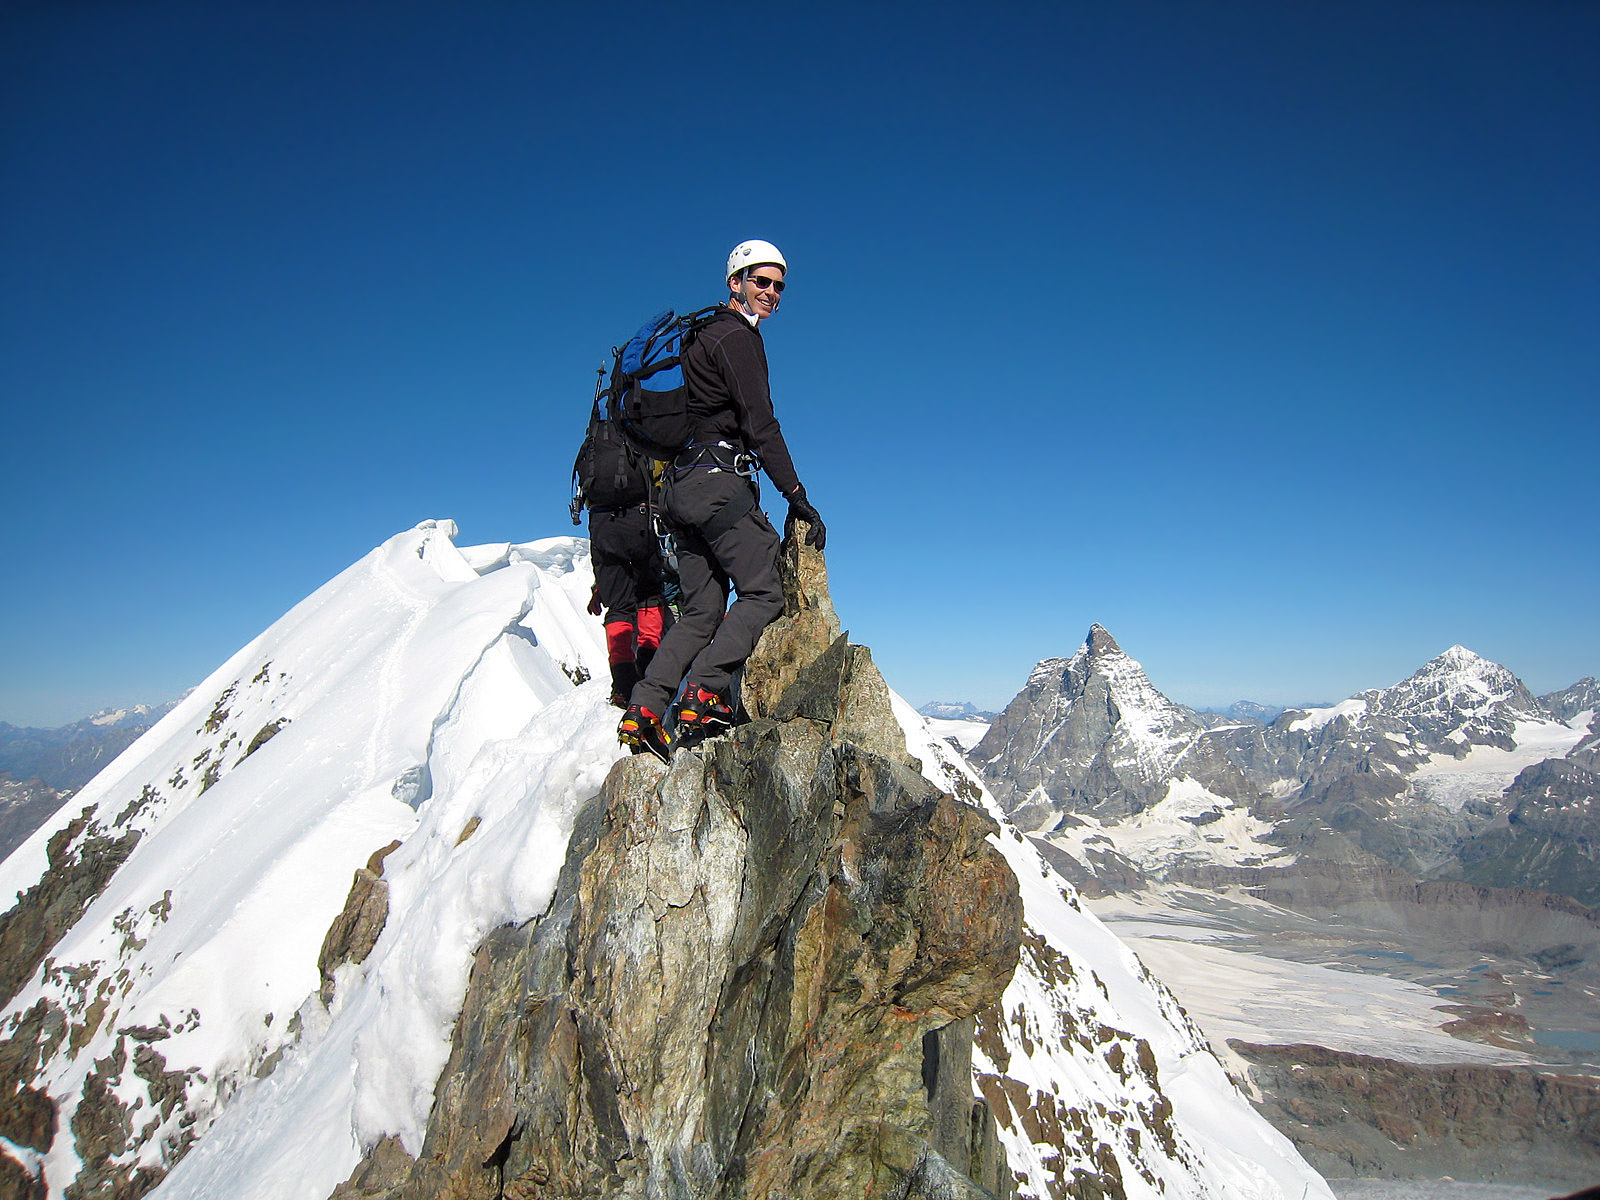 The Matterhorn With International Mountain Guides